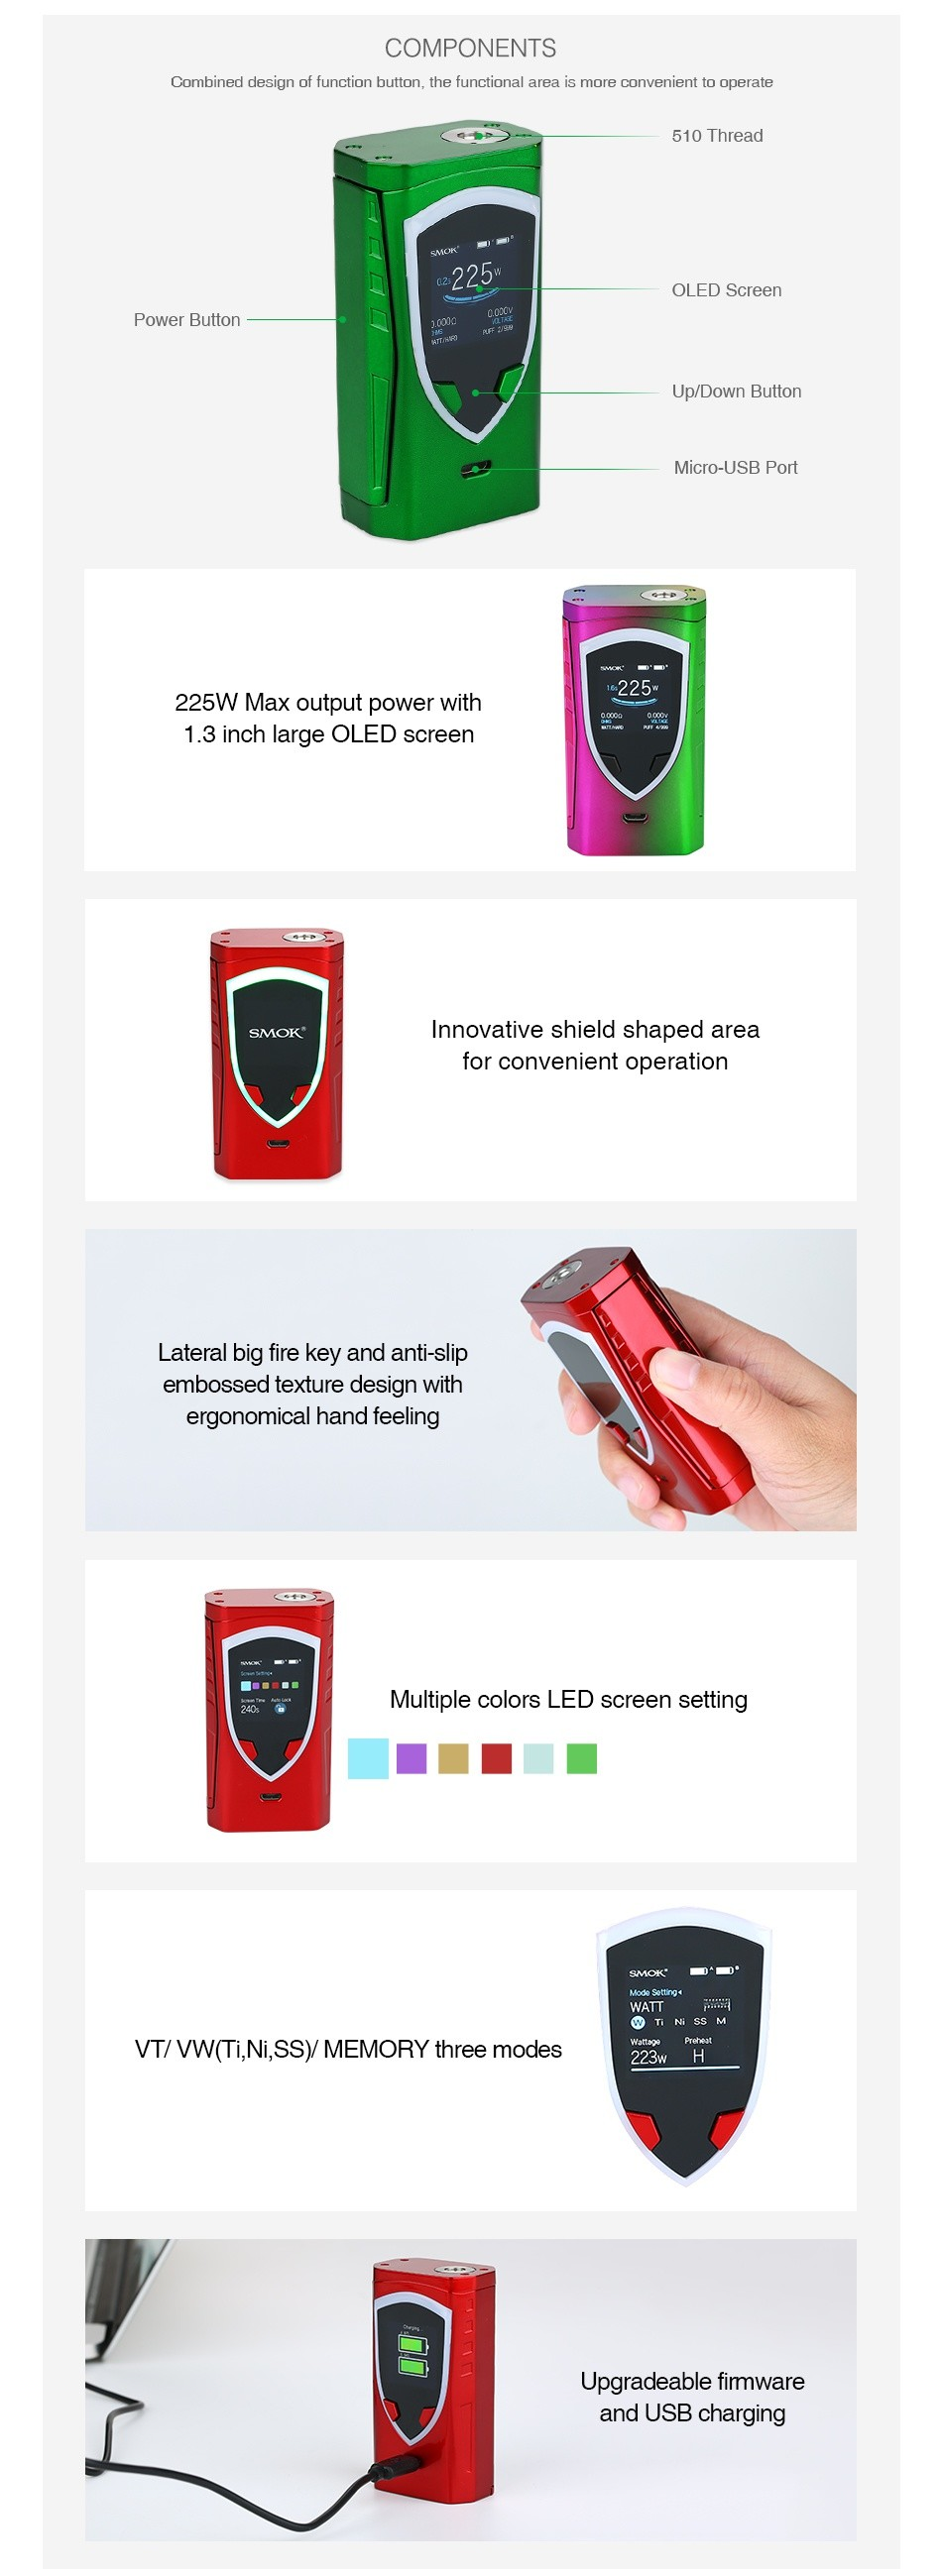 SMOK ProColor 225W TC Box MOD COMPONENTS Curnbil lbu ues yll uf furiuliur bullunl  the furiuliurlal area is JUrIVeTleTIL LU UpRate 510 Thread OLED Screen Power Button UO DI Aicro USB Port 225W Max output power with 1  3 inch large OLED screen Innovative shield shaped area for convenient operation Lateral big fire key and anti slip embossed texture design with ergonomical hand feeling Multiple colors LED screen setting VT VW TL  Ni SSy MEMORY three modes 223 H Upgradeable firmware and USB charging